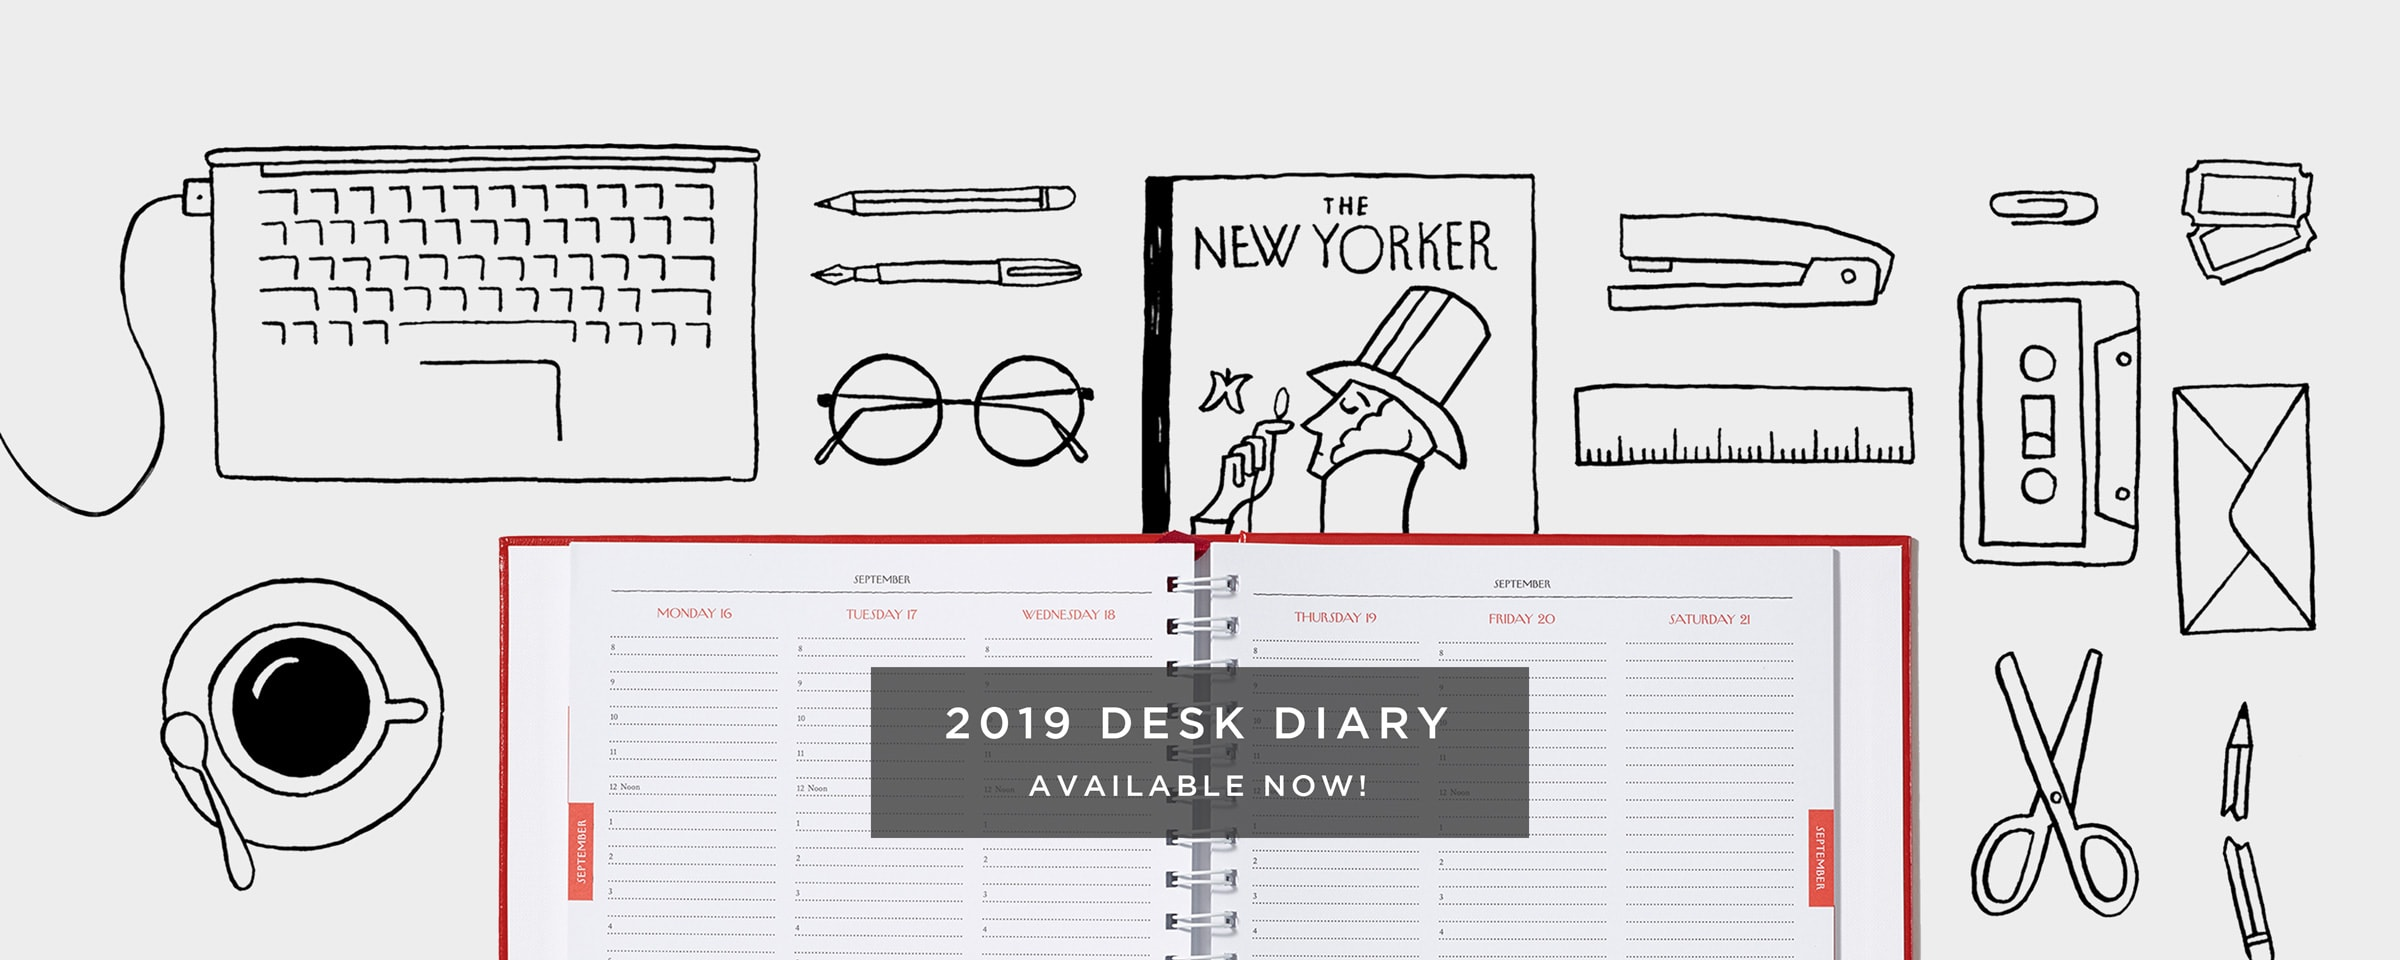 New Yorker Desk Diary Day Planner 2019